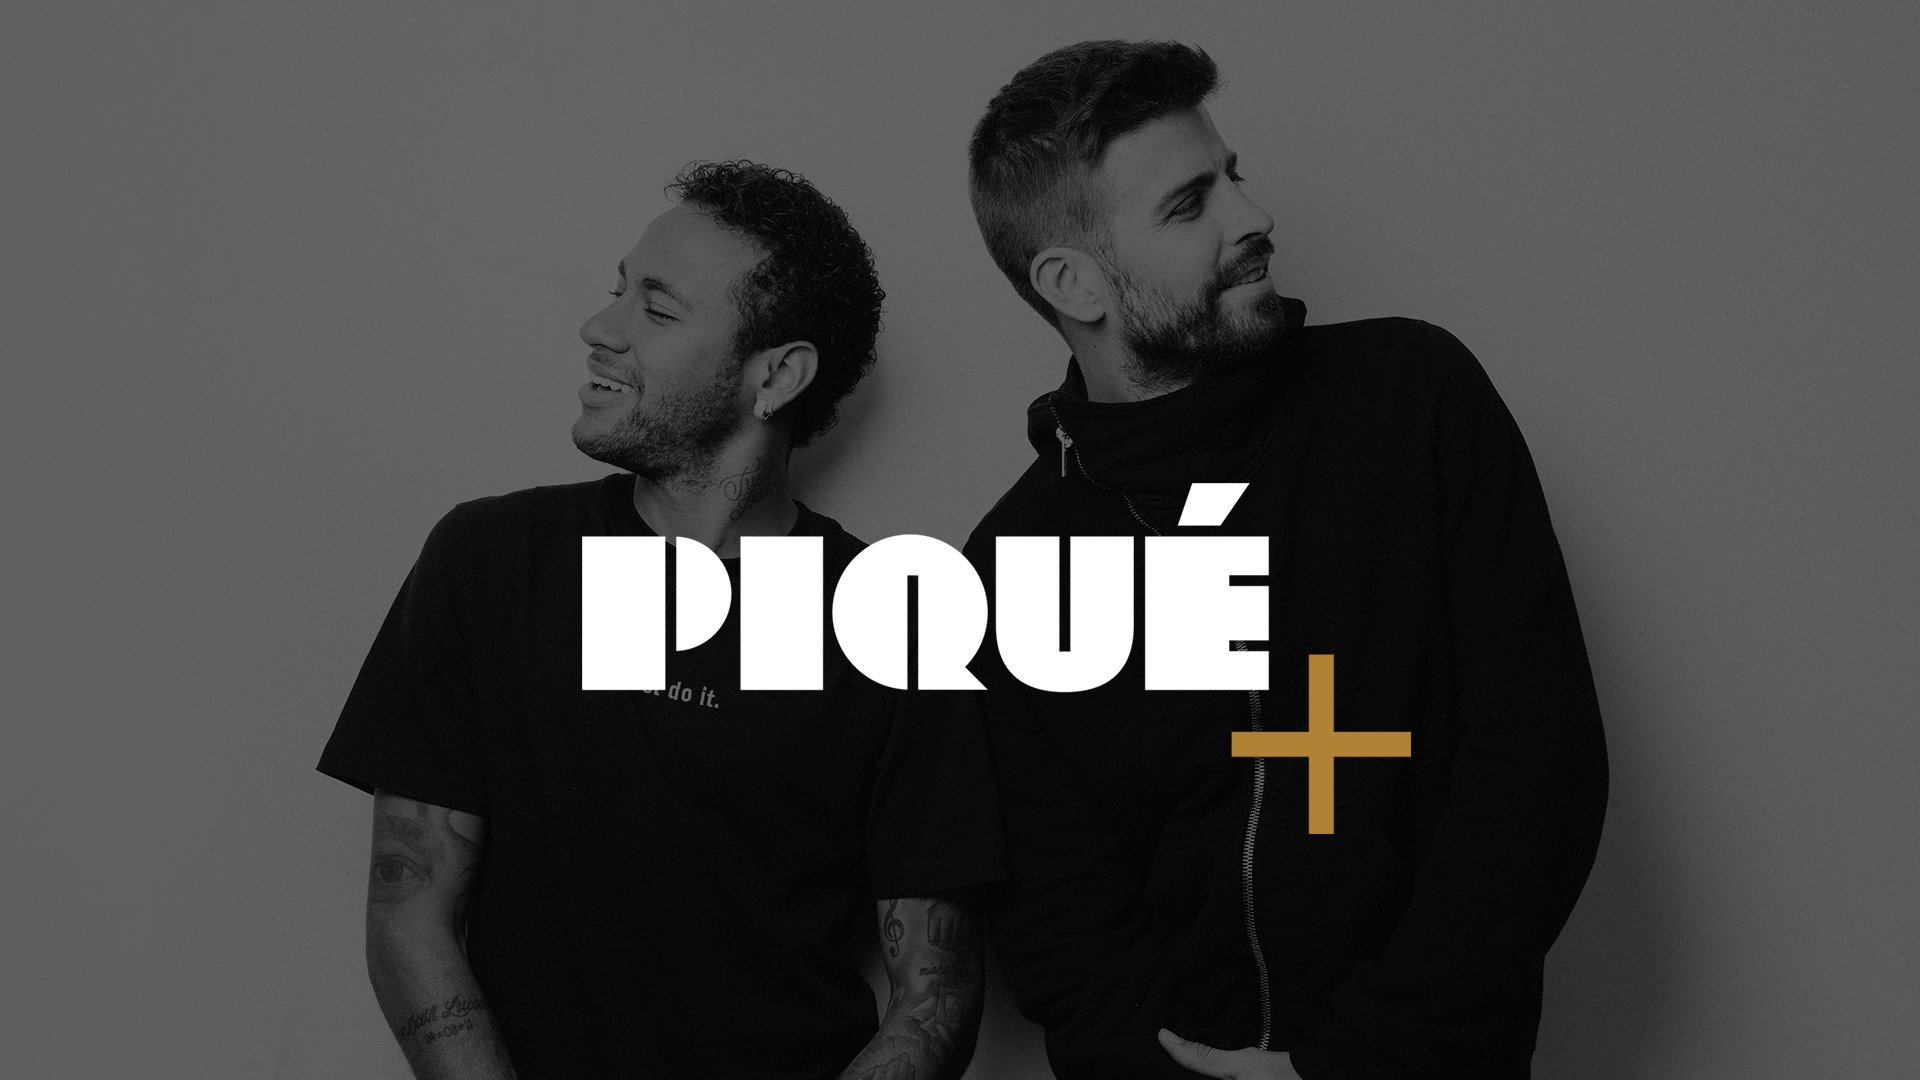 Watch my full Piqué+ interview with @neymarjr here: https://t.co/CKZxbllH5J https://t.co/CNZnrS2k7i